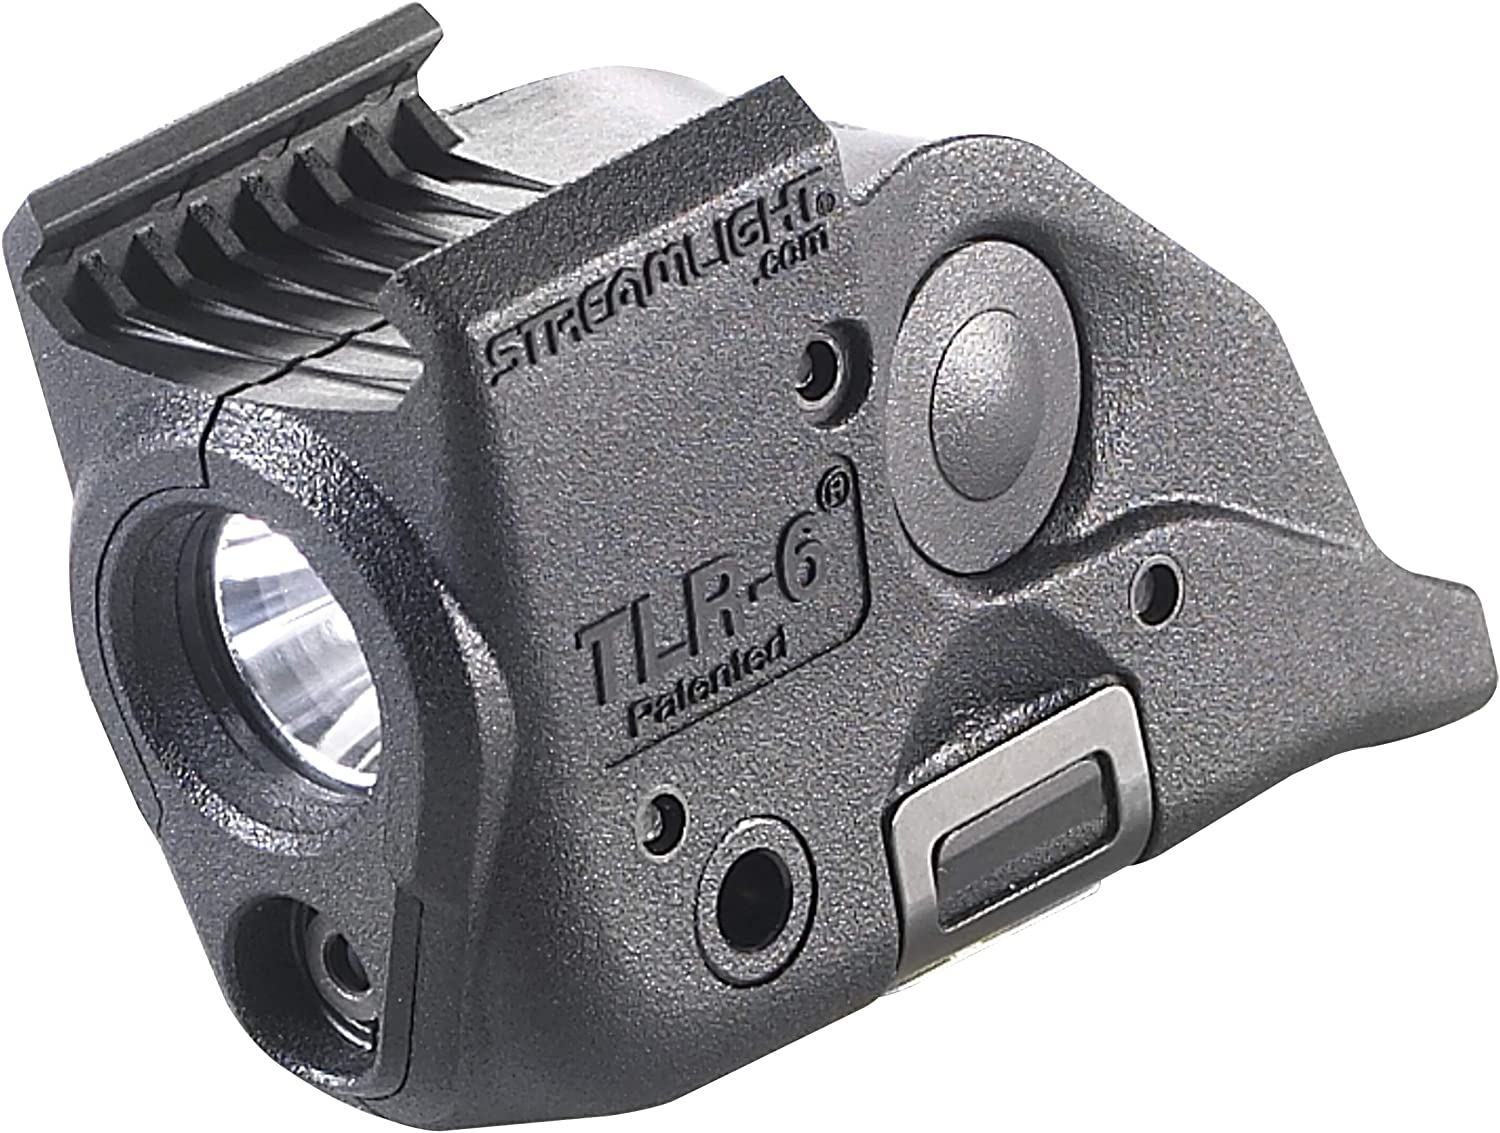 Streamlight 69293 TLR-6 Tactical Pistol Mount Flashlight With Laser, Black